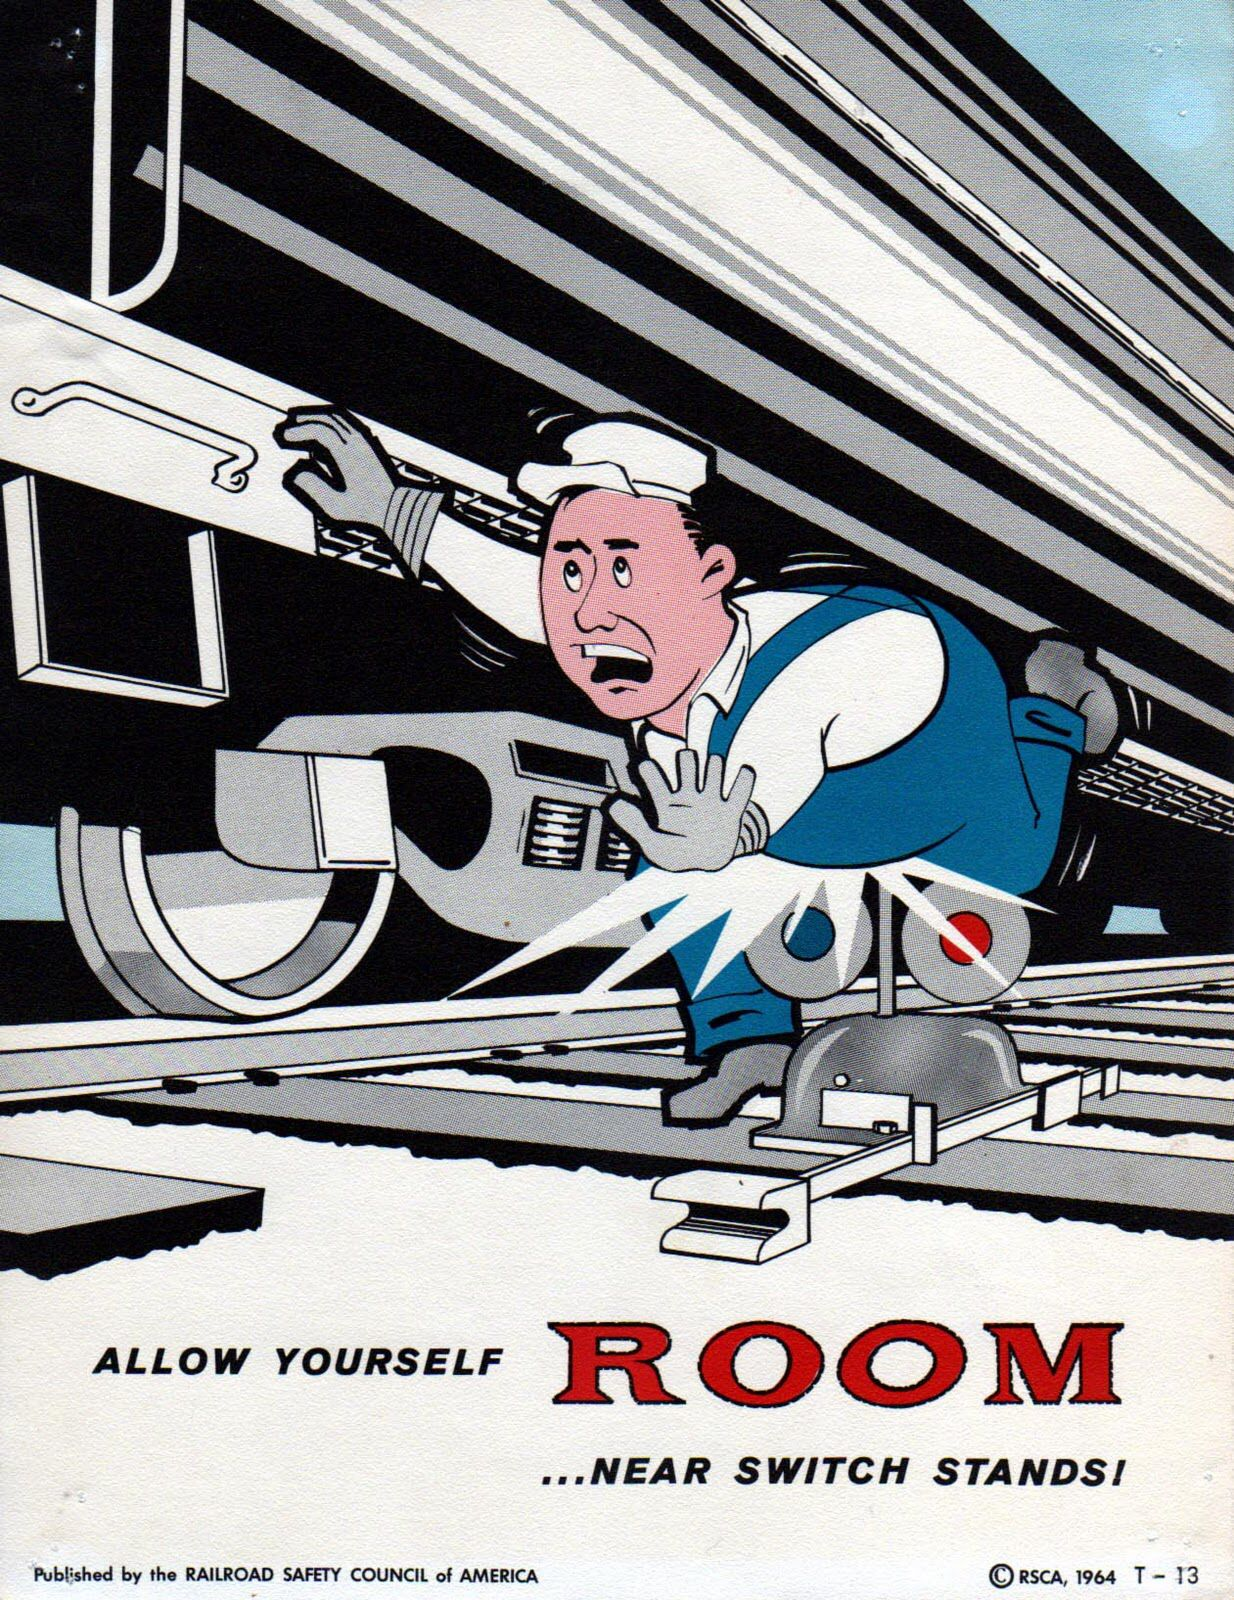 Allow yourself room